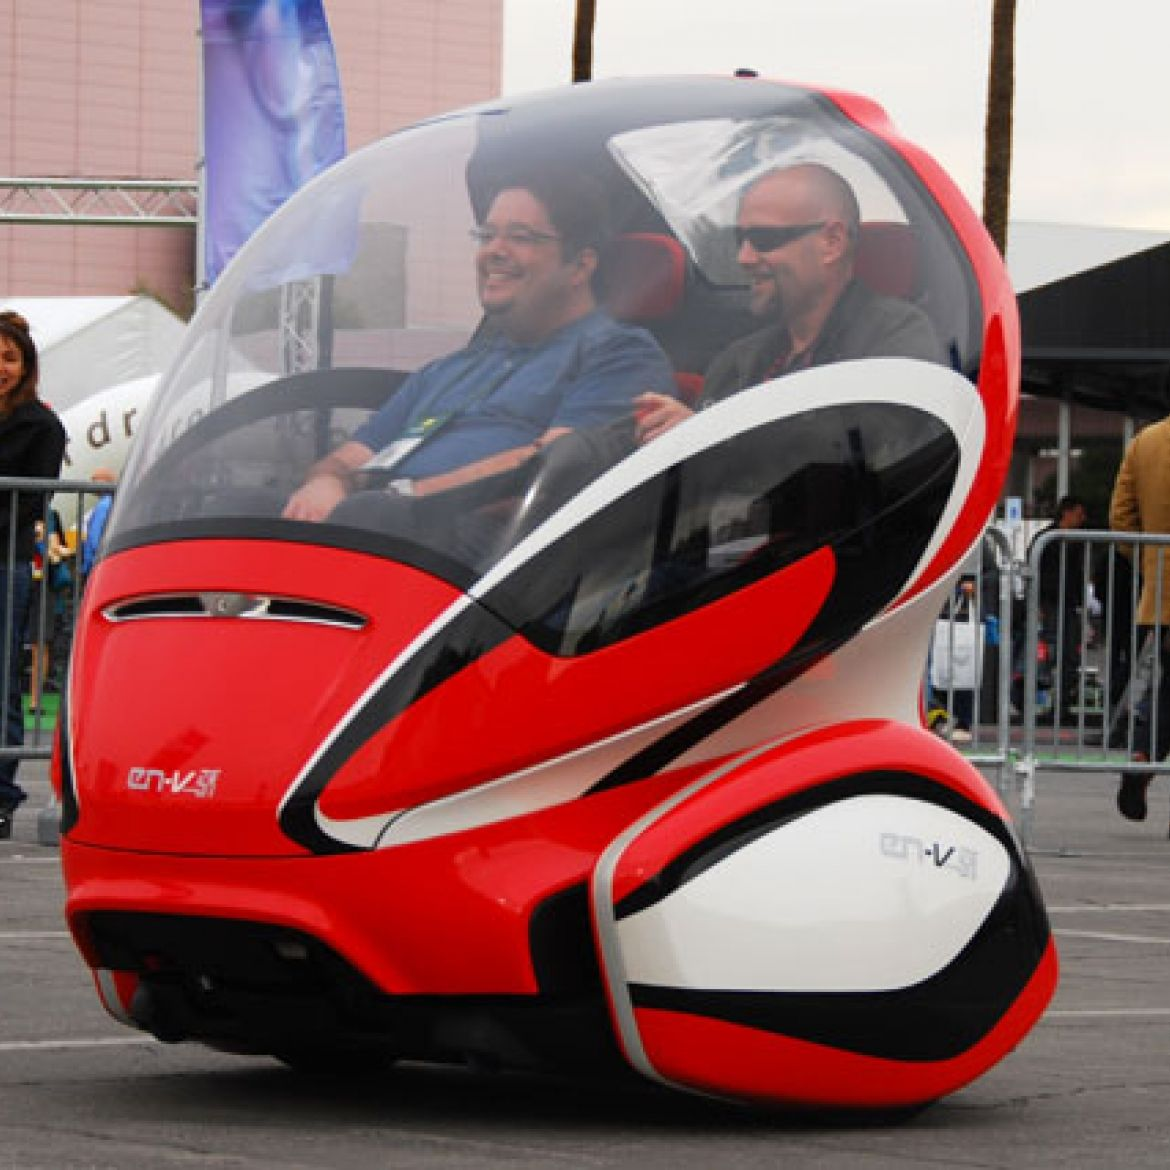 GM's EN-V (Electronic Networked Vehicles), Self-driving